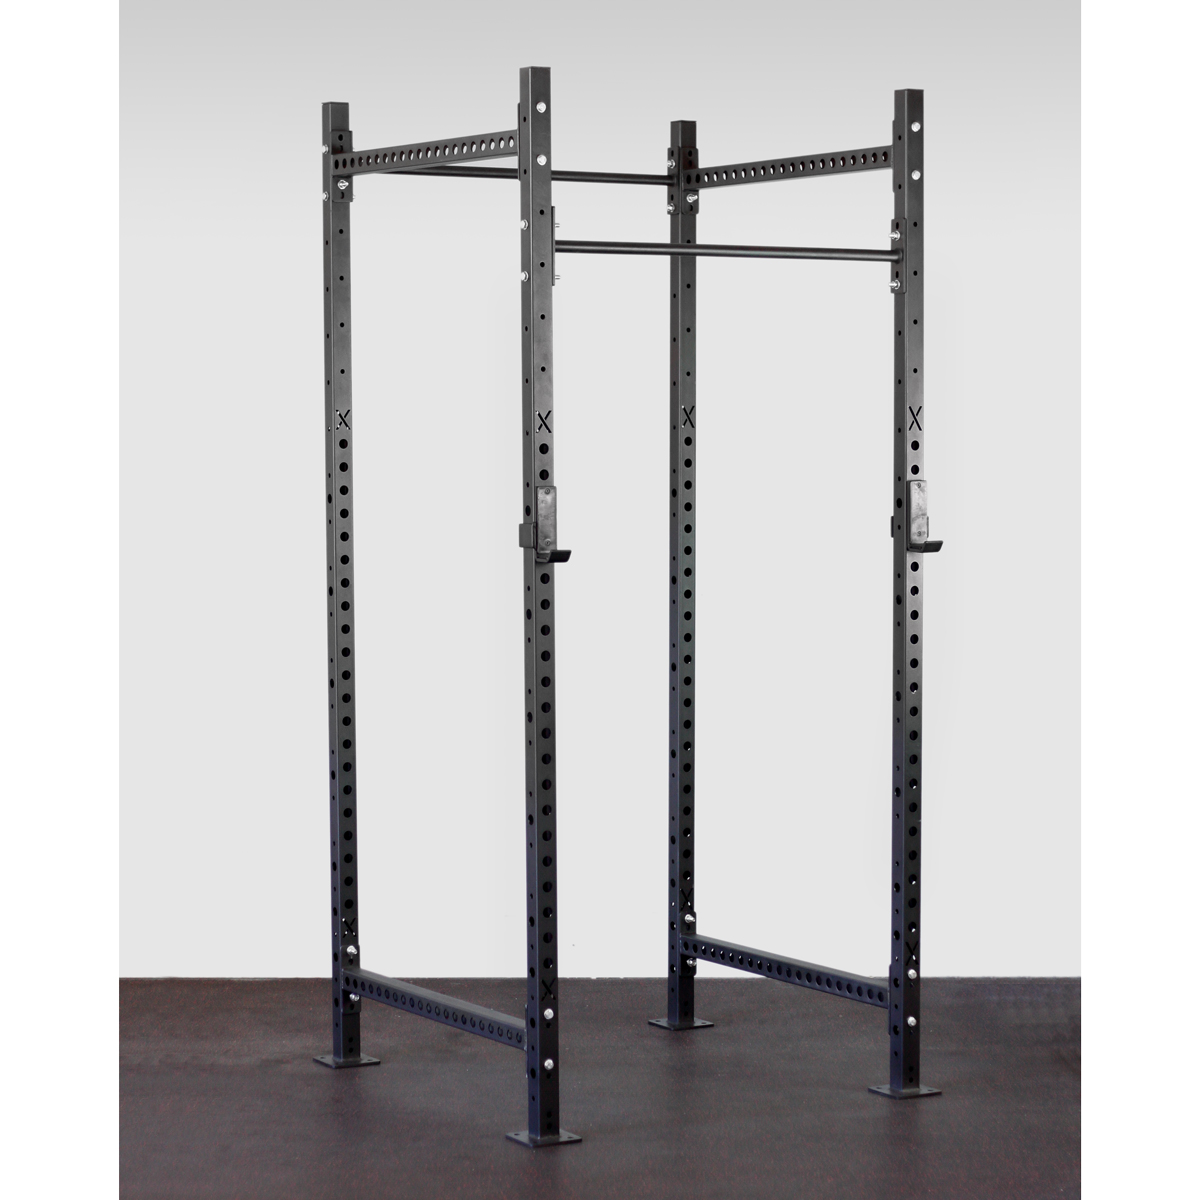 X Training Equipment® 4x4 Elite Power Rack - Pre-Order Now - ETA 11/30